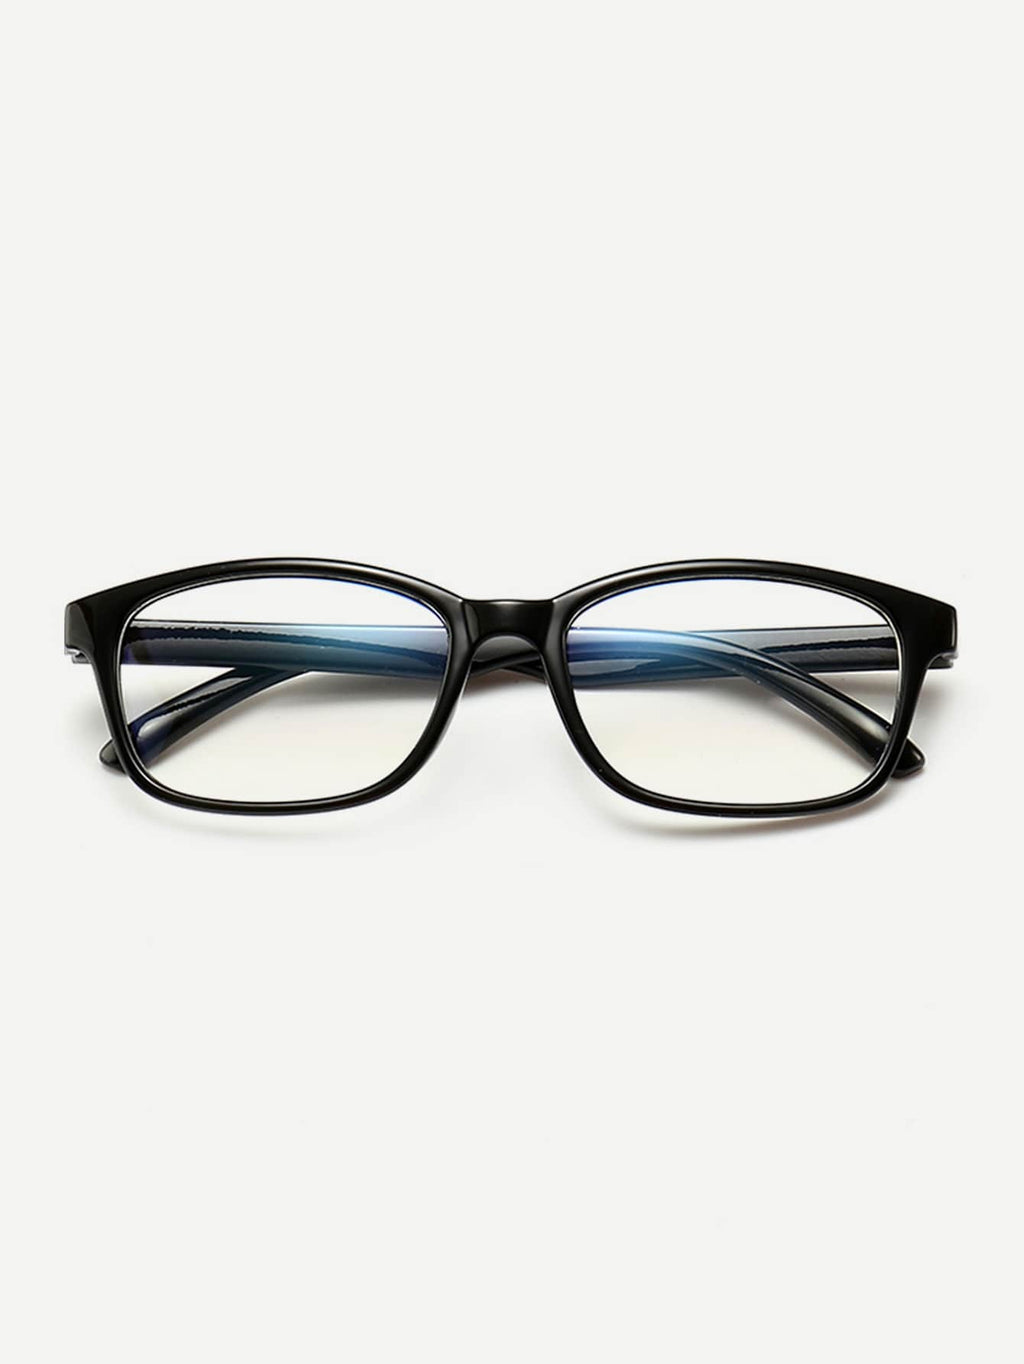 Men's Glasses - Plain Frame Glasses